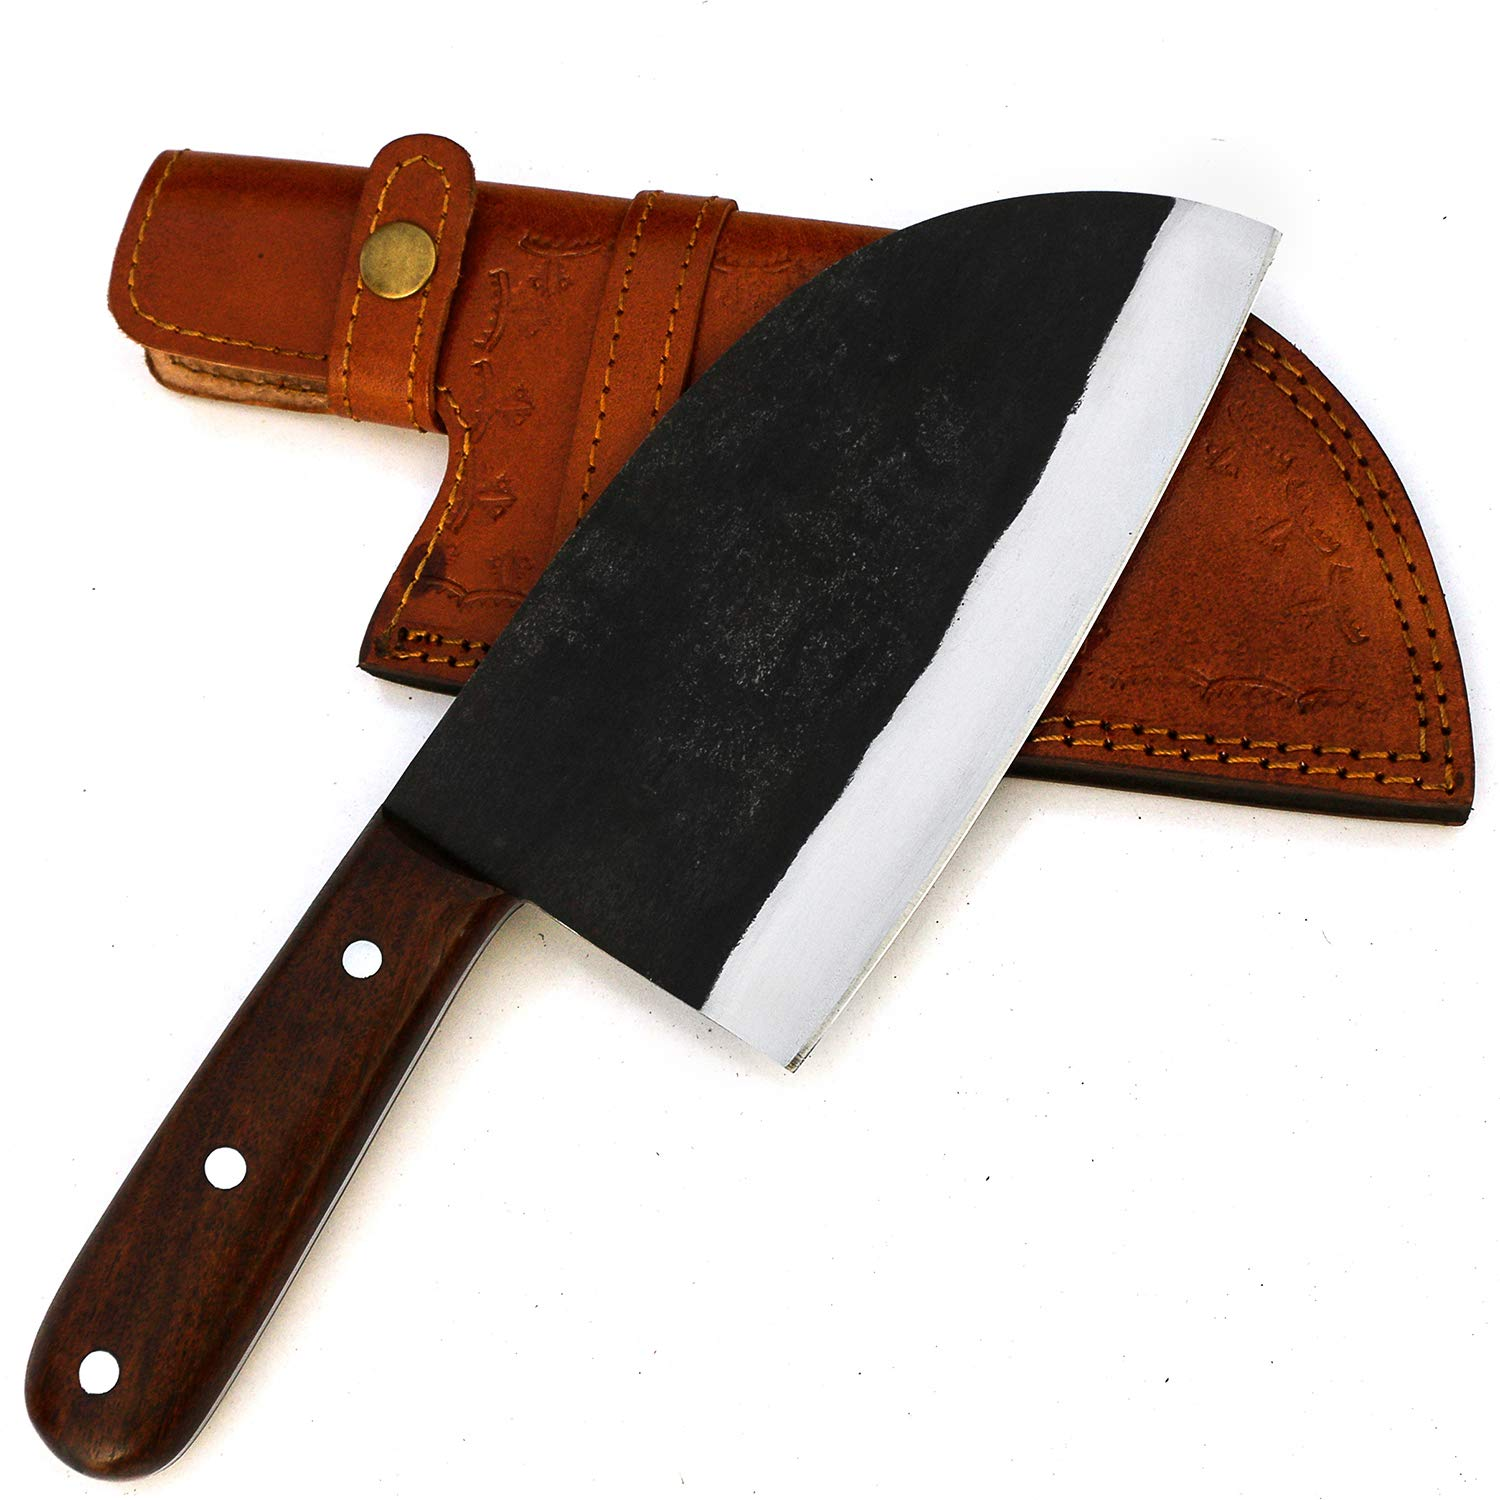 JNR TRADERS VK5510 Handmade 440c Steel Serbian Cleaver Chopper Kitchen Home Chef Professional Knife 11.5 Inches with Leather Sheath